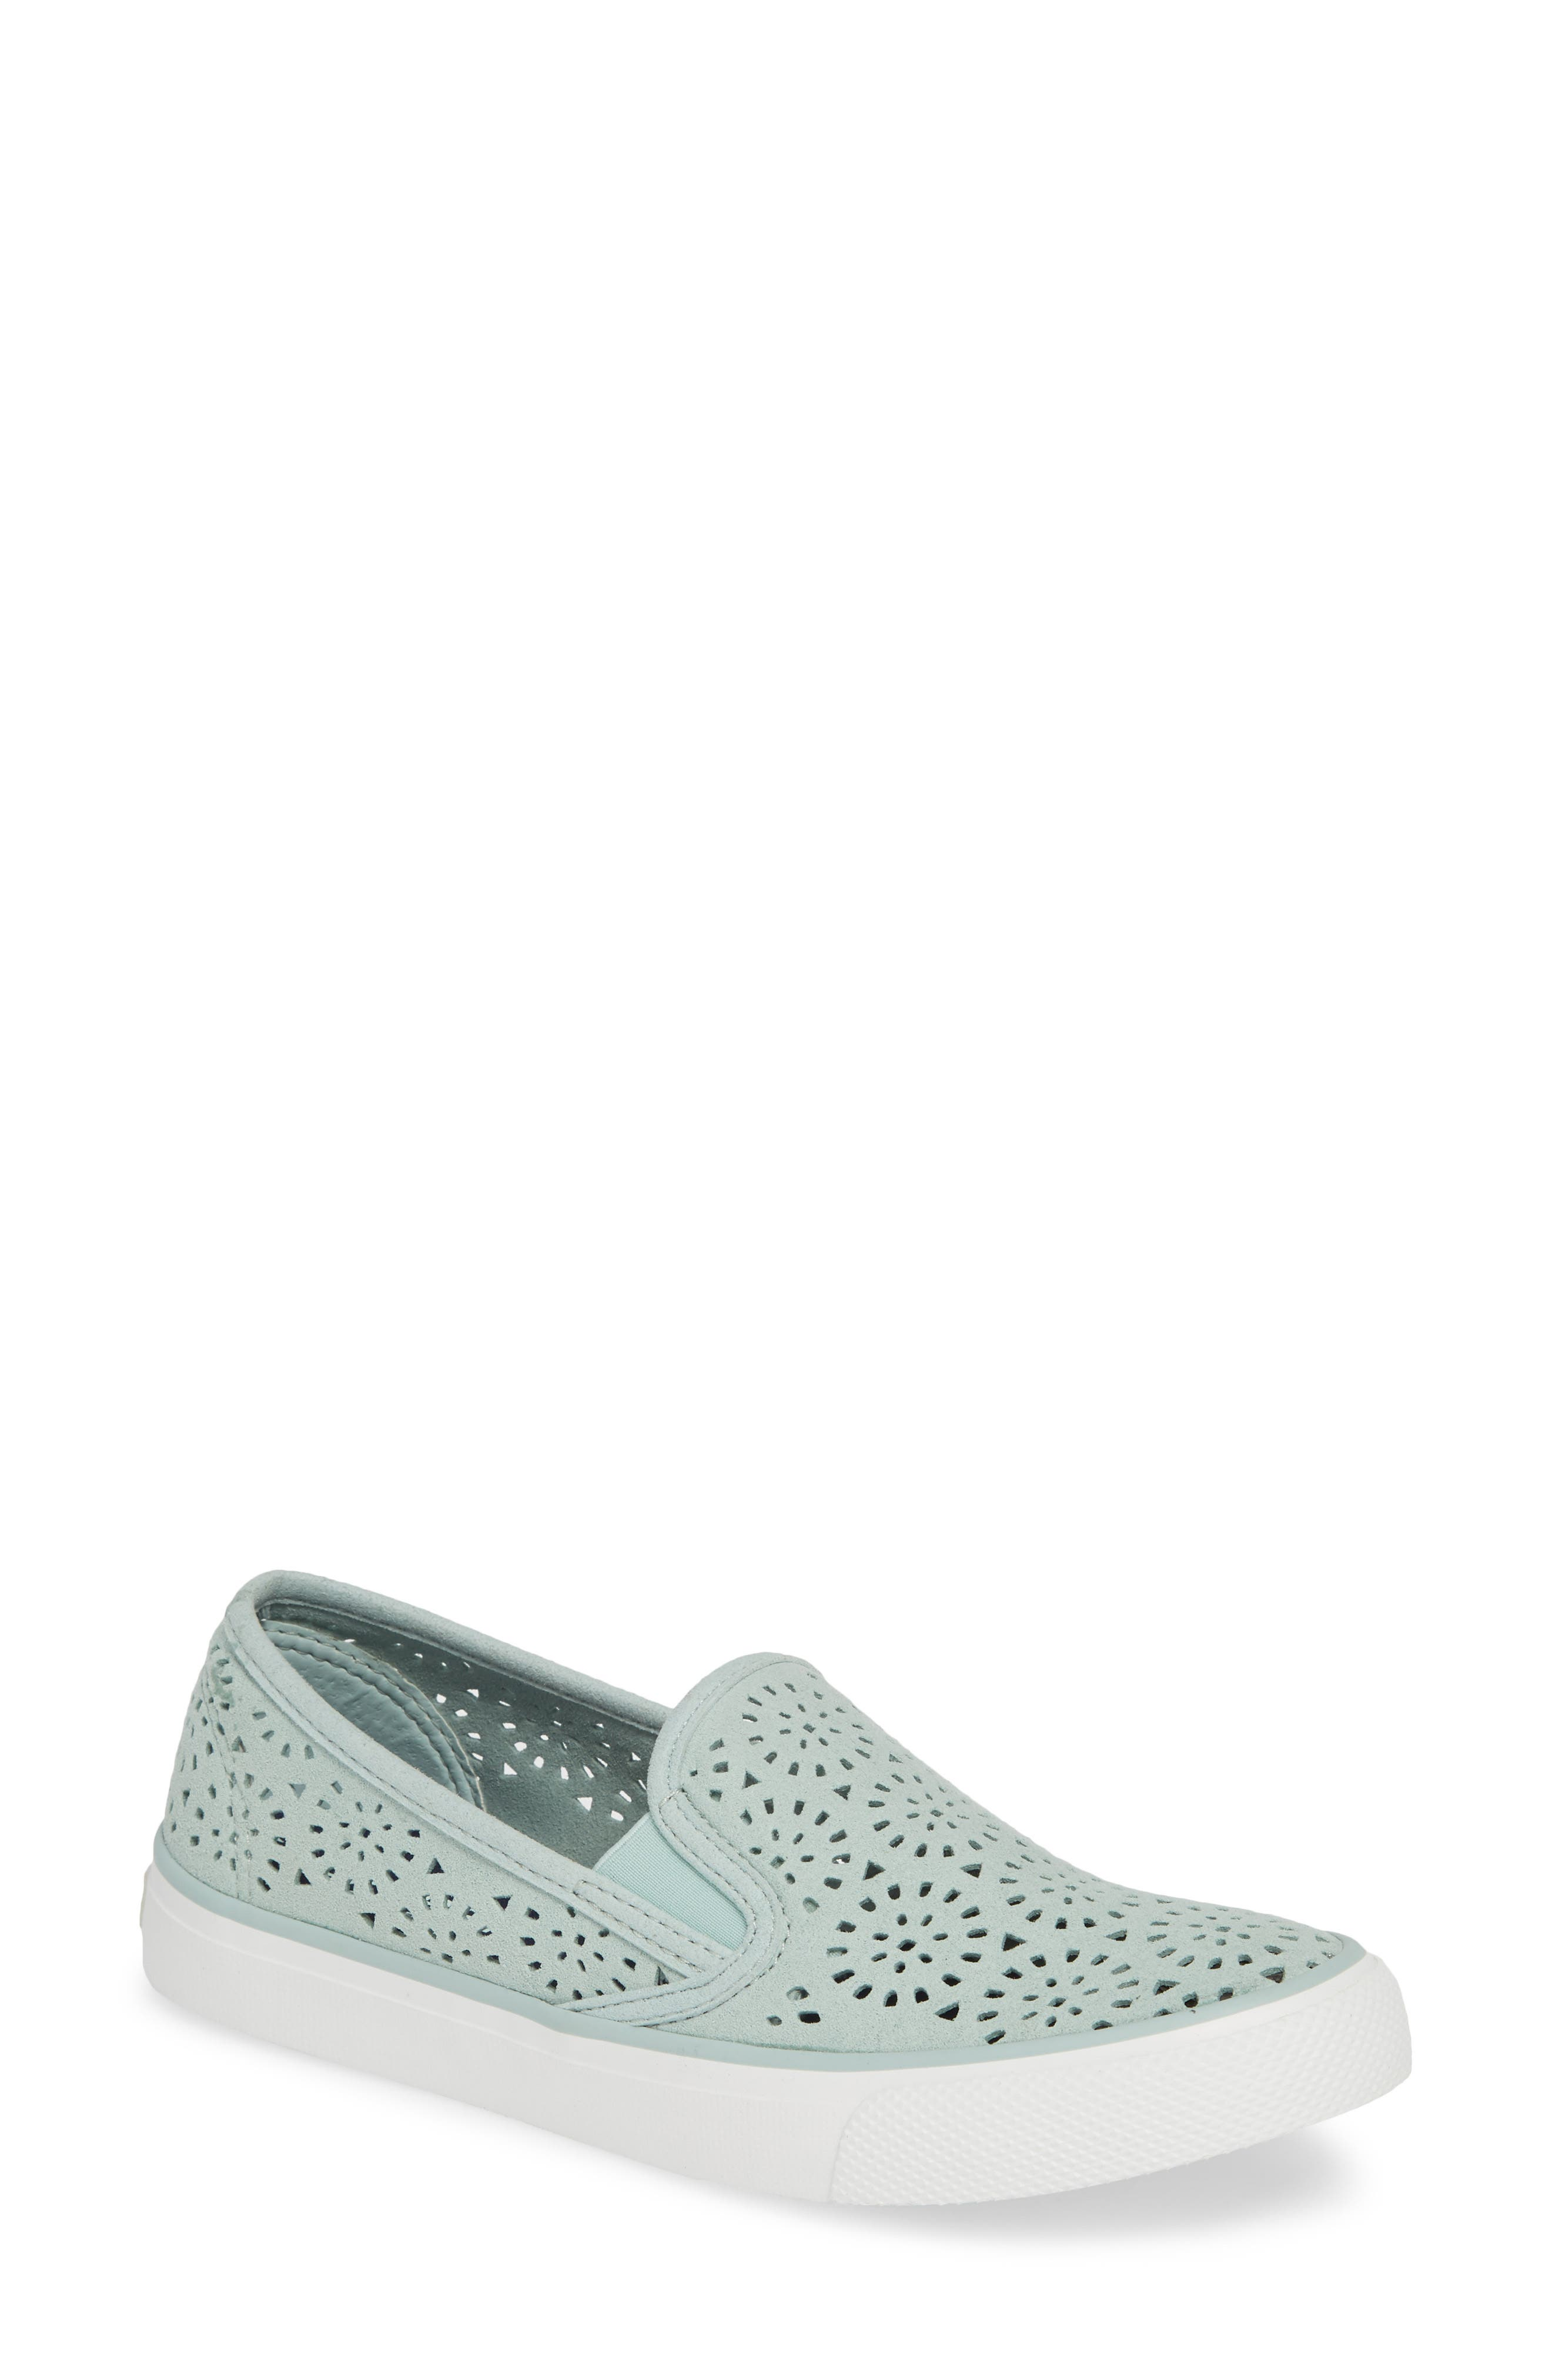 Seaside Nautical Perforated Slip-On Sneaker,                             Main thumbnail 1, color,                             MINT NUBUCK LEATHER